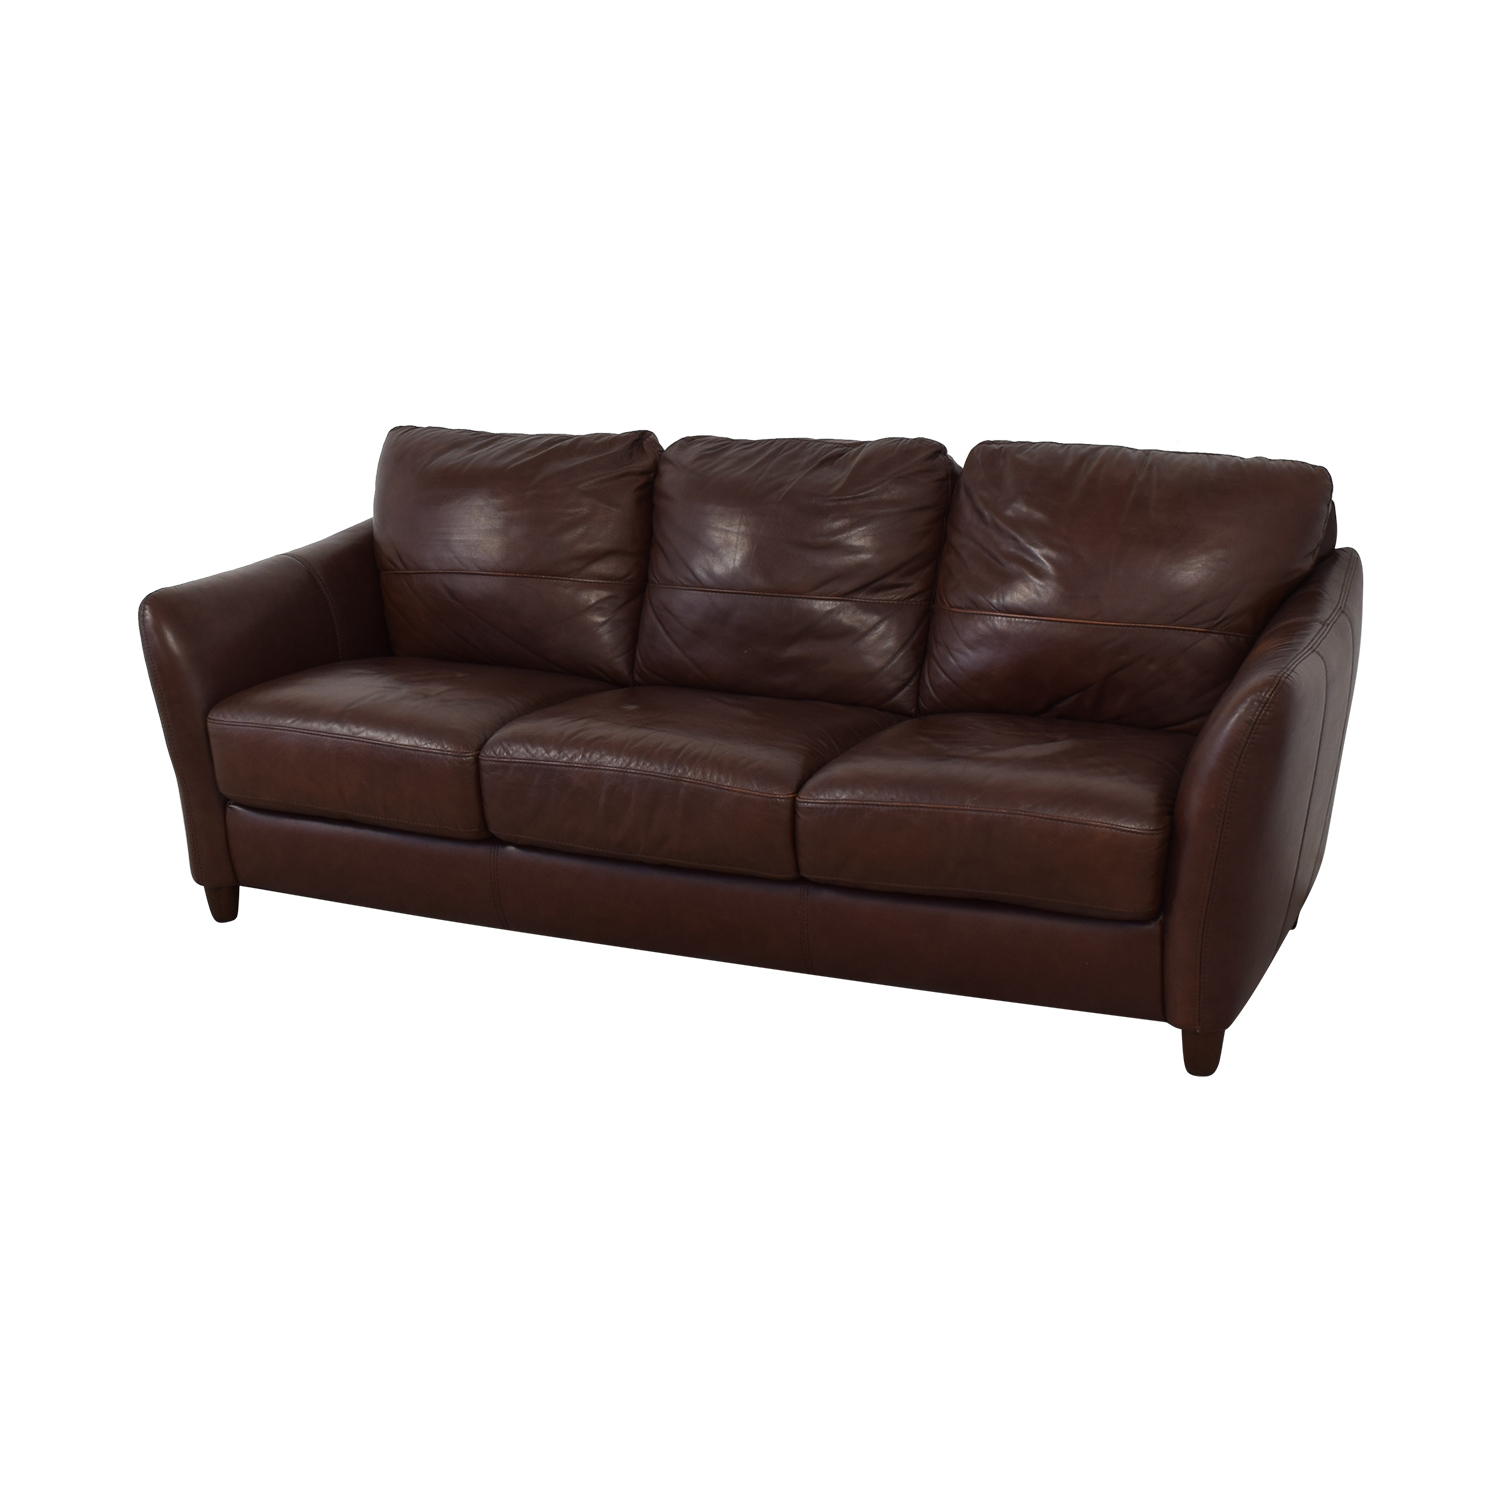 Raymour & Flanigan Leather Sofa / Classic Sofas